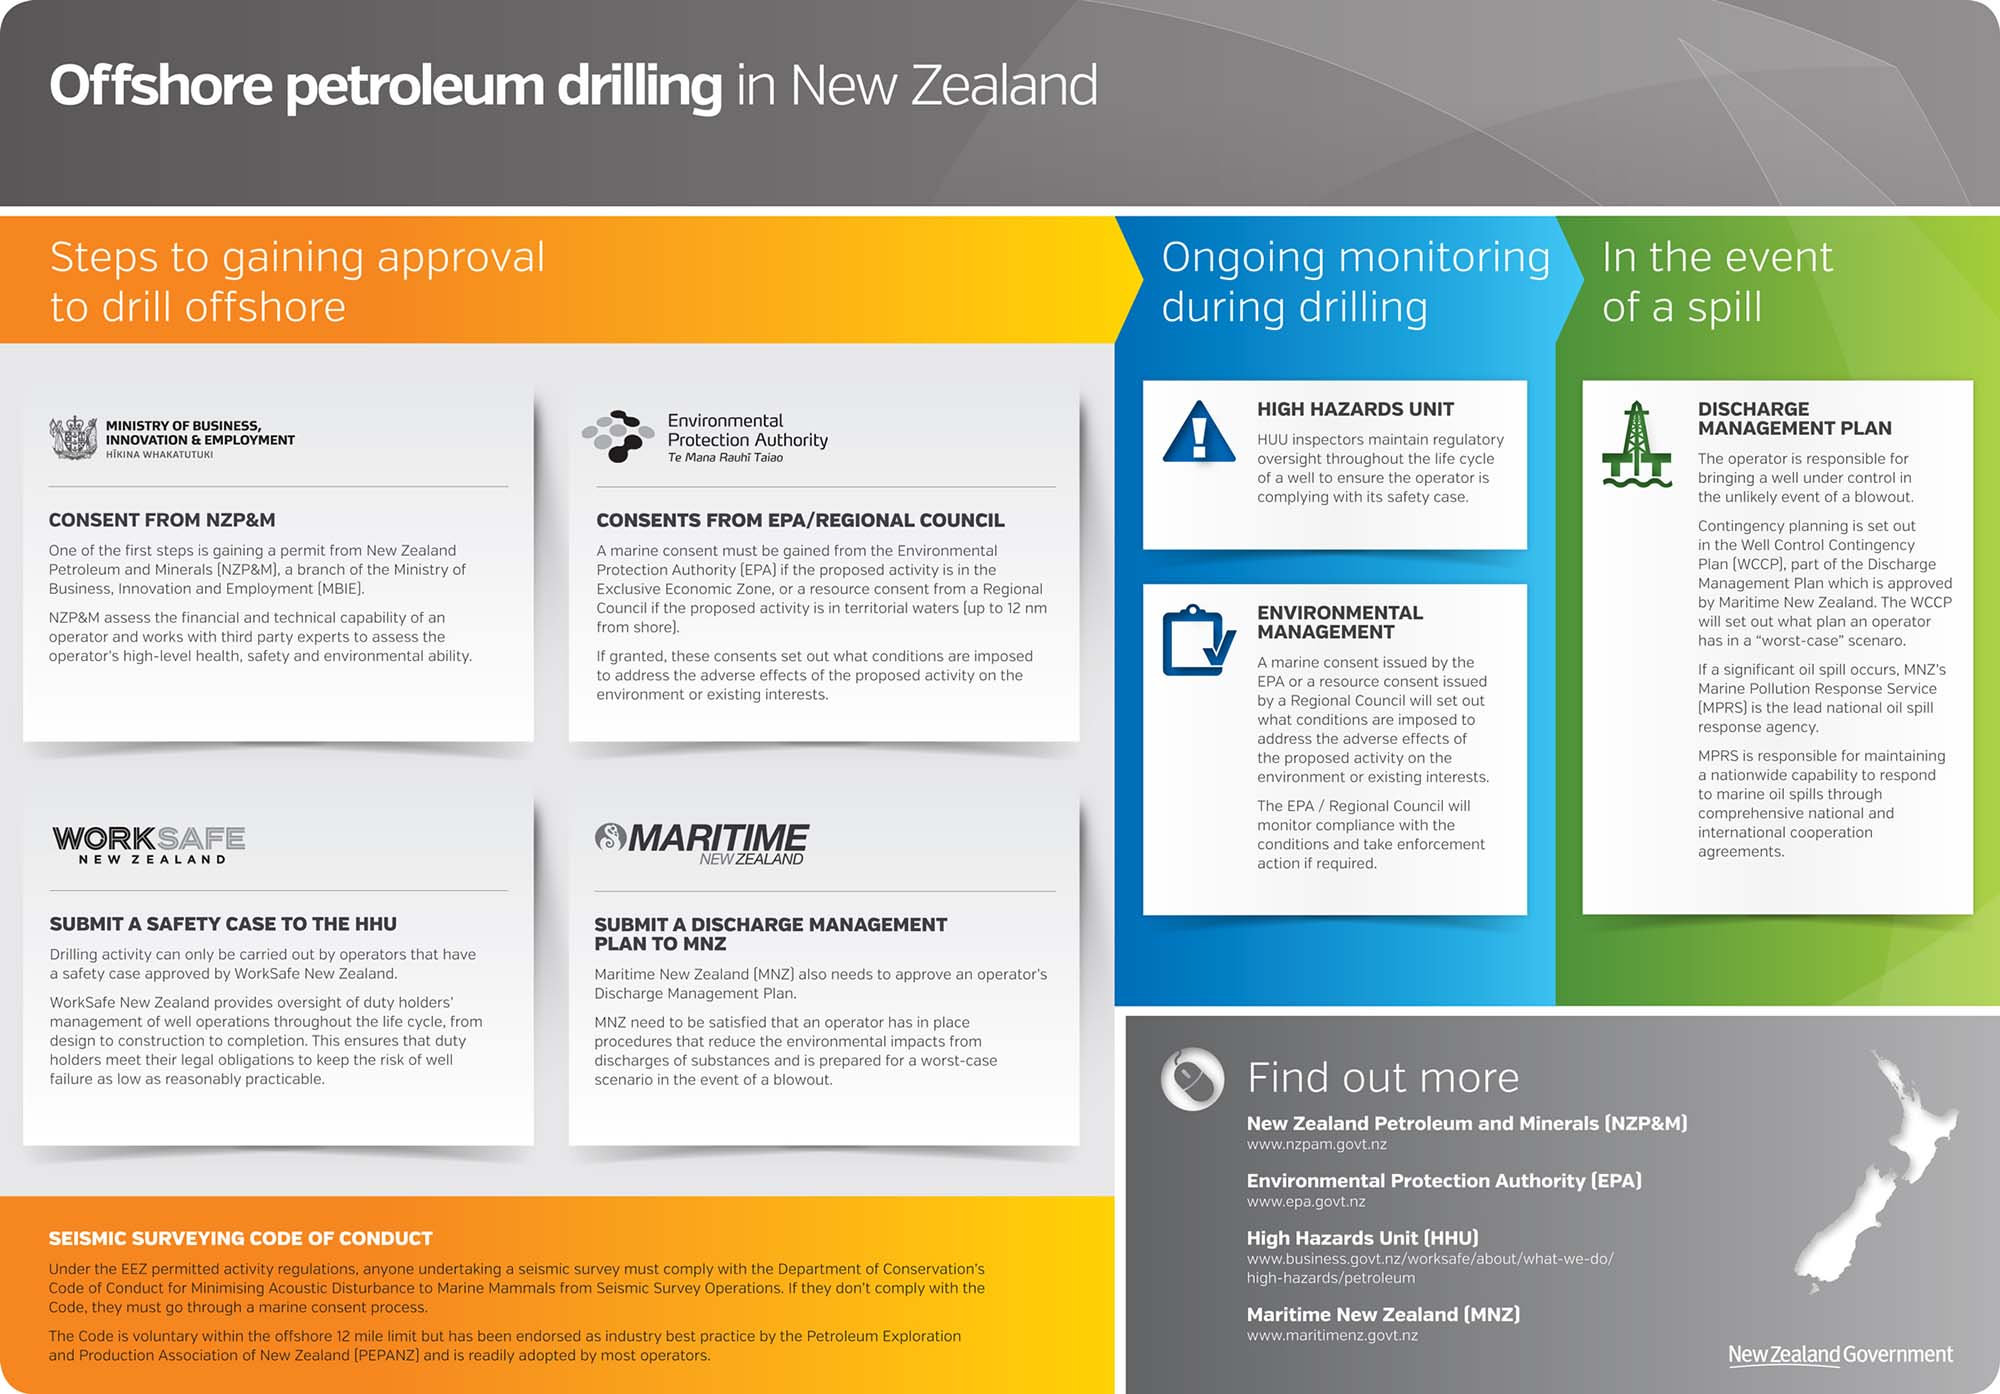 Graphic showing the steps to gain approval for offshore petroleum drilling